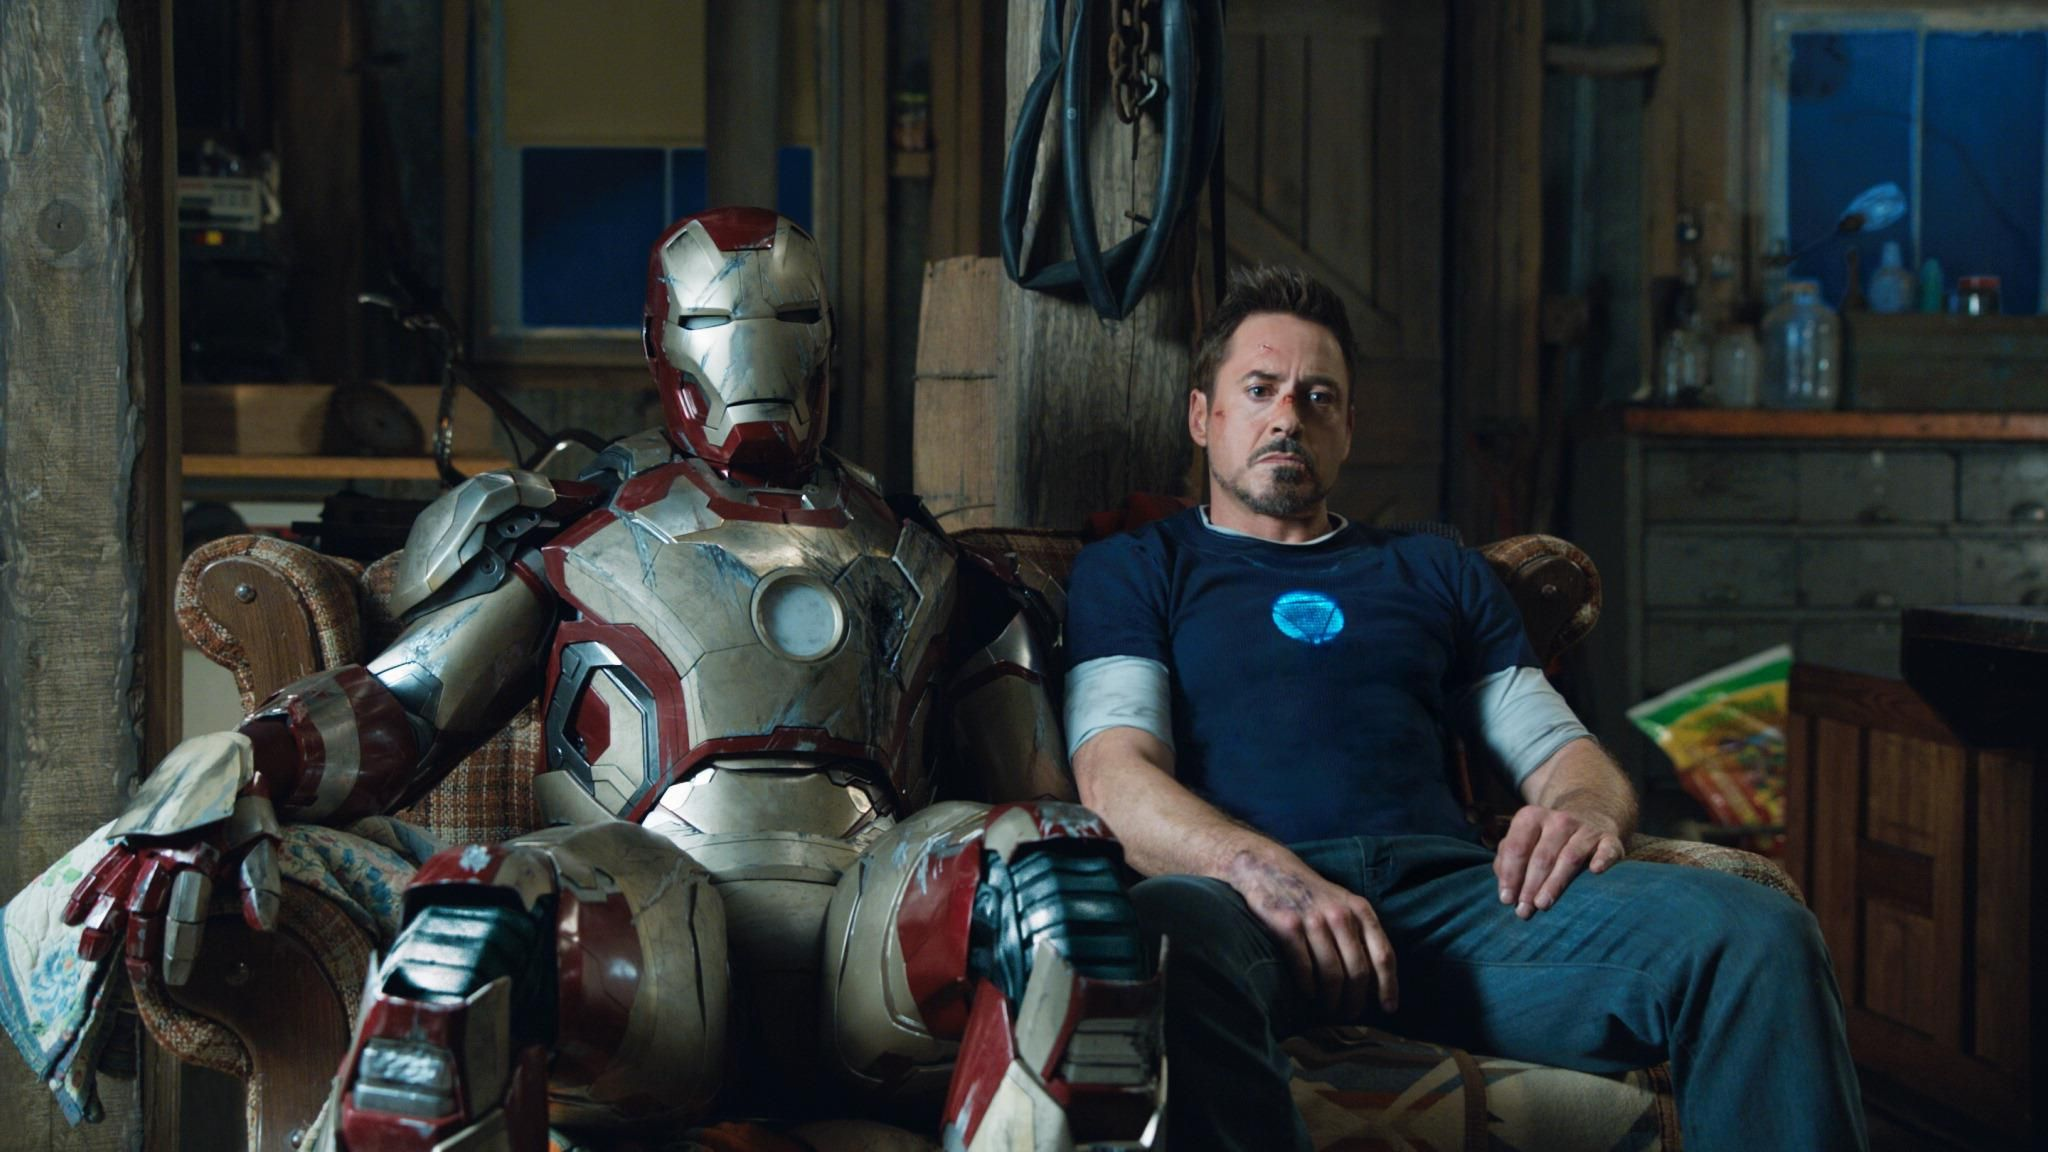 Tony Stark (played by Robert Downey Jr) having a rough night in ...